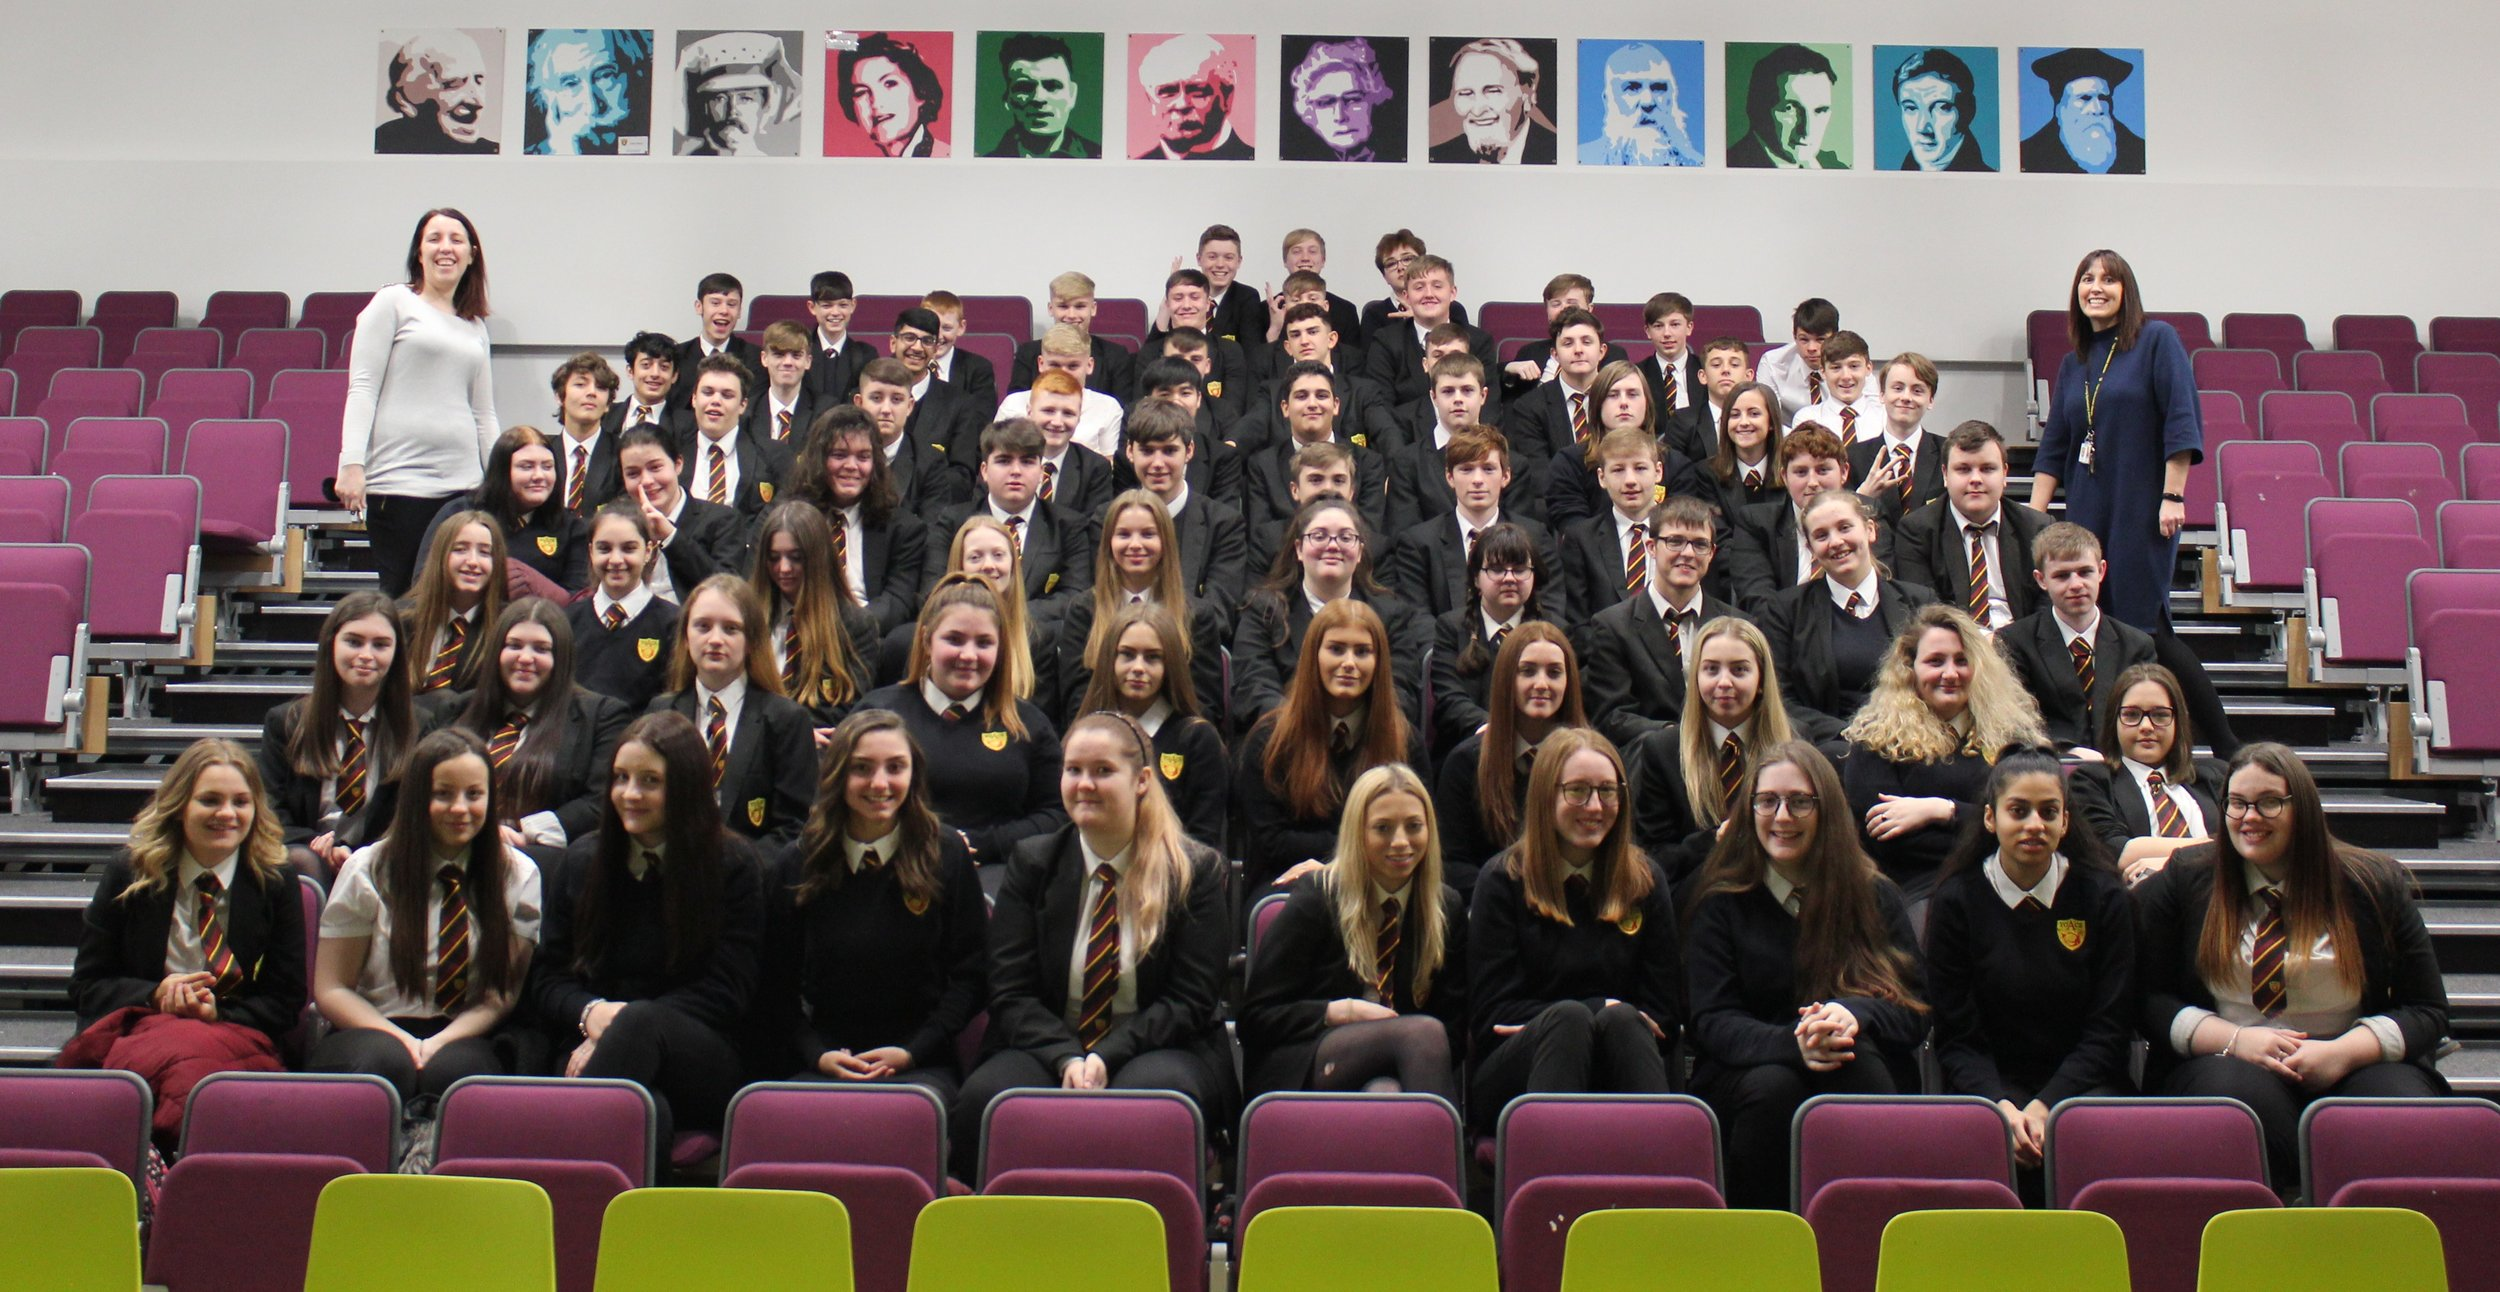 A massive congratulations to our 82 Year 11 Students who gained A*-C in their November GCSE Numeracy exam! #Proud #StriveBelieveAchieve